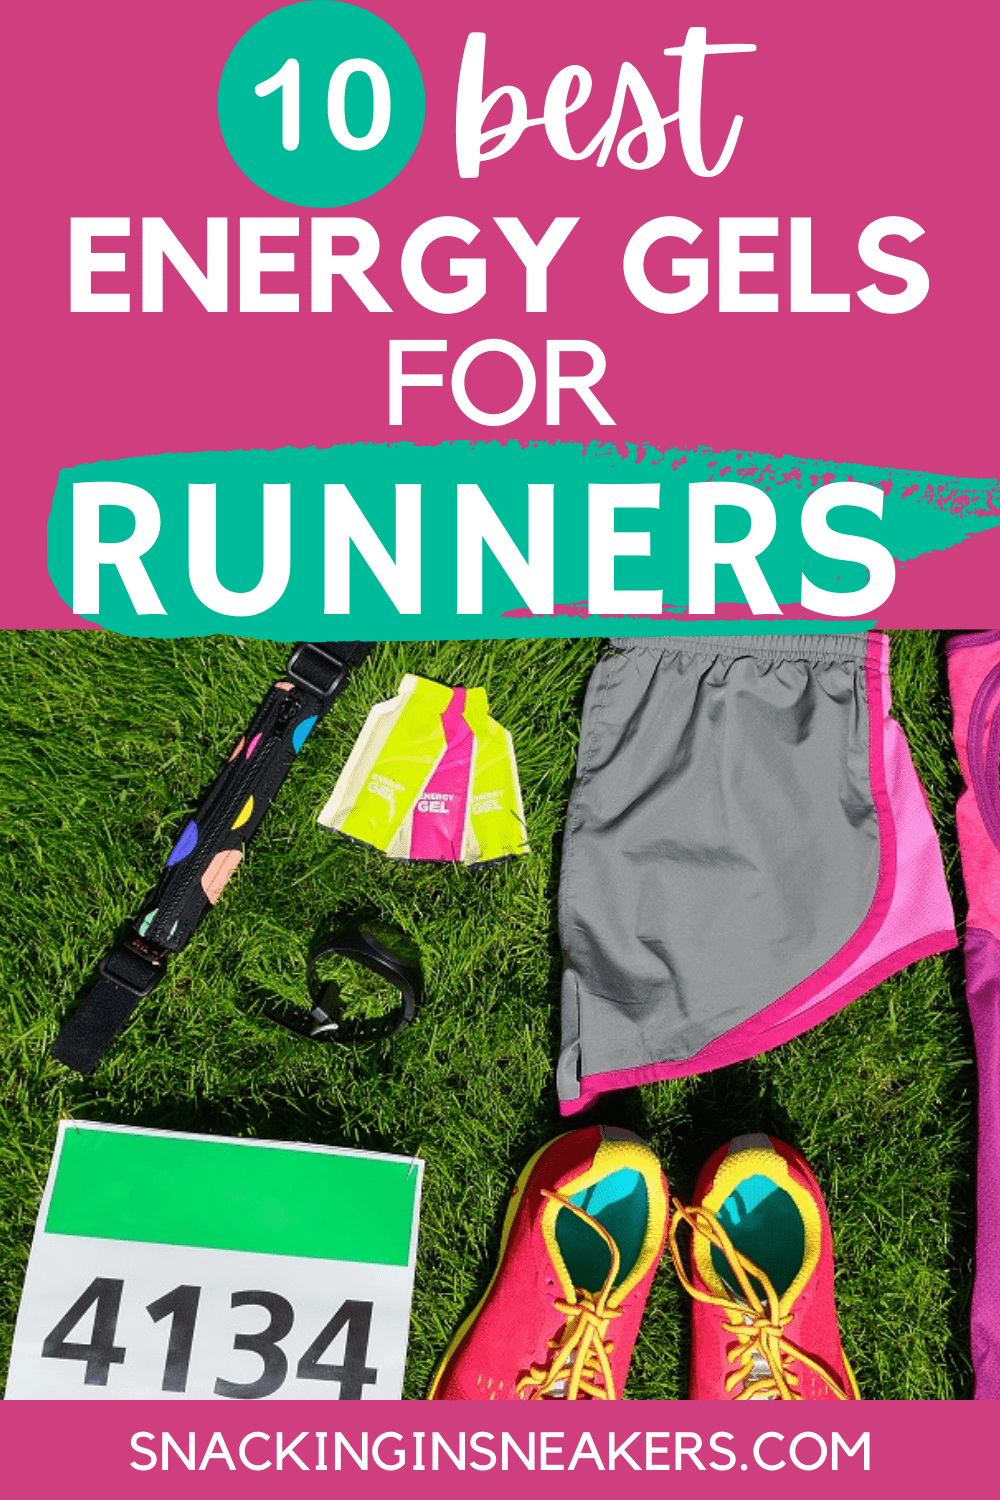 a flatlay of womans running gear with a text overlay that says 10 best energy gels for runners